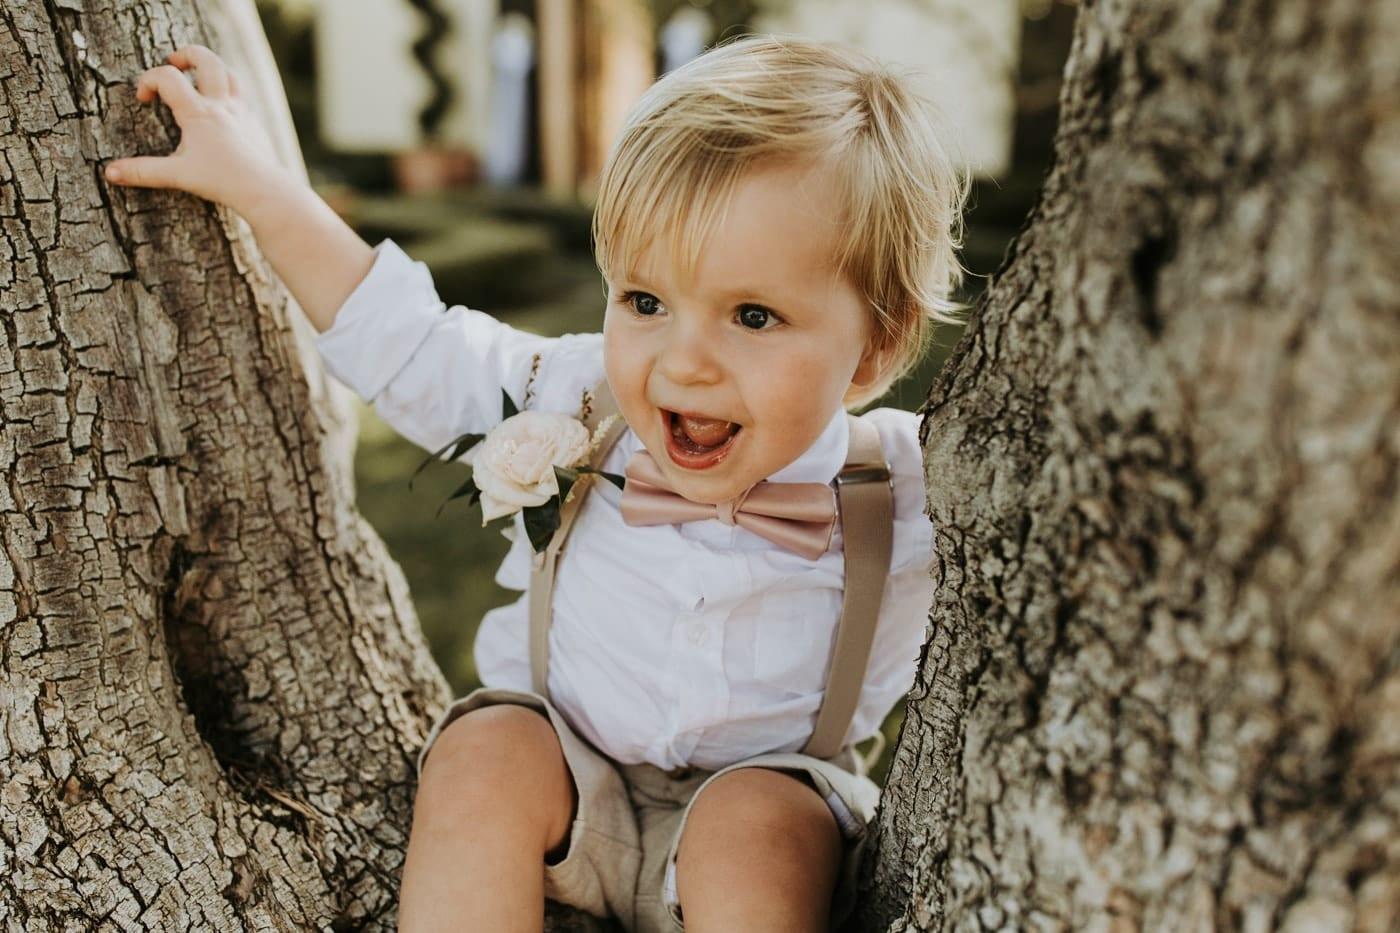 Real Weddings | Vinka Design | Real Brides Wearing Vinka Gowns | Camille and Aaron's little boy in tree